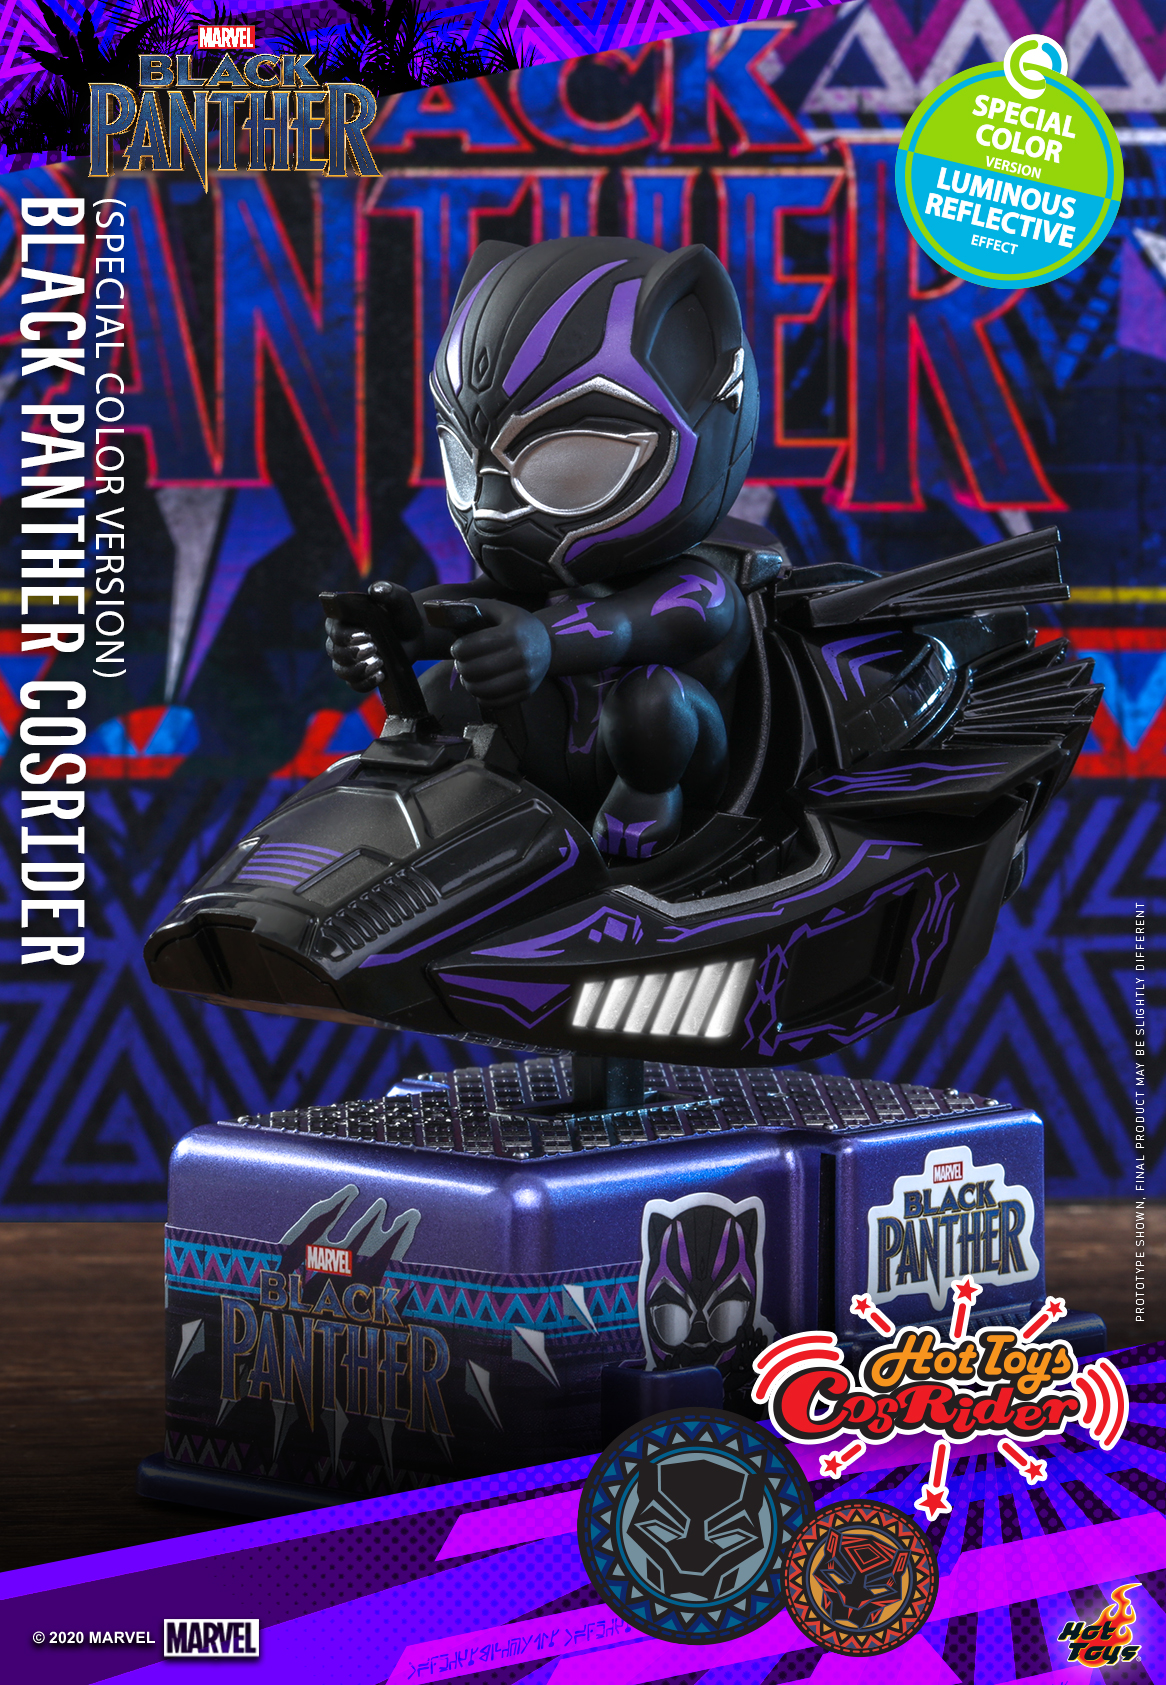 Hot Toys - BP - Black Panther (Special Color) CosRider_PR1